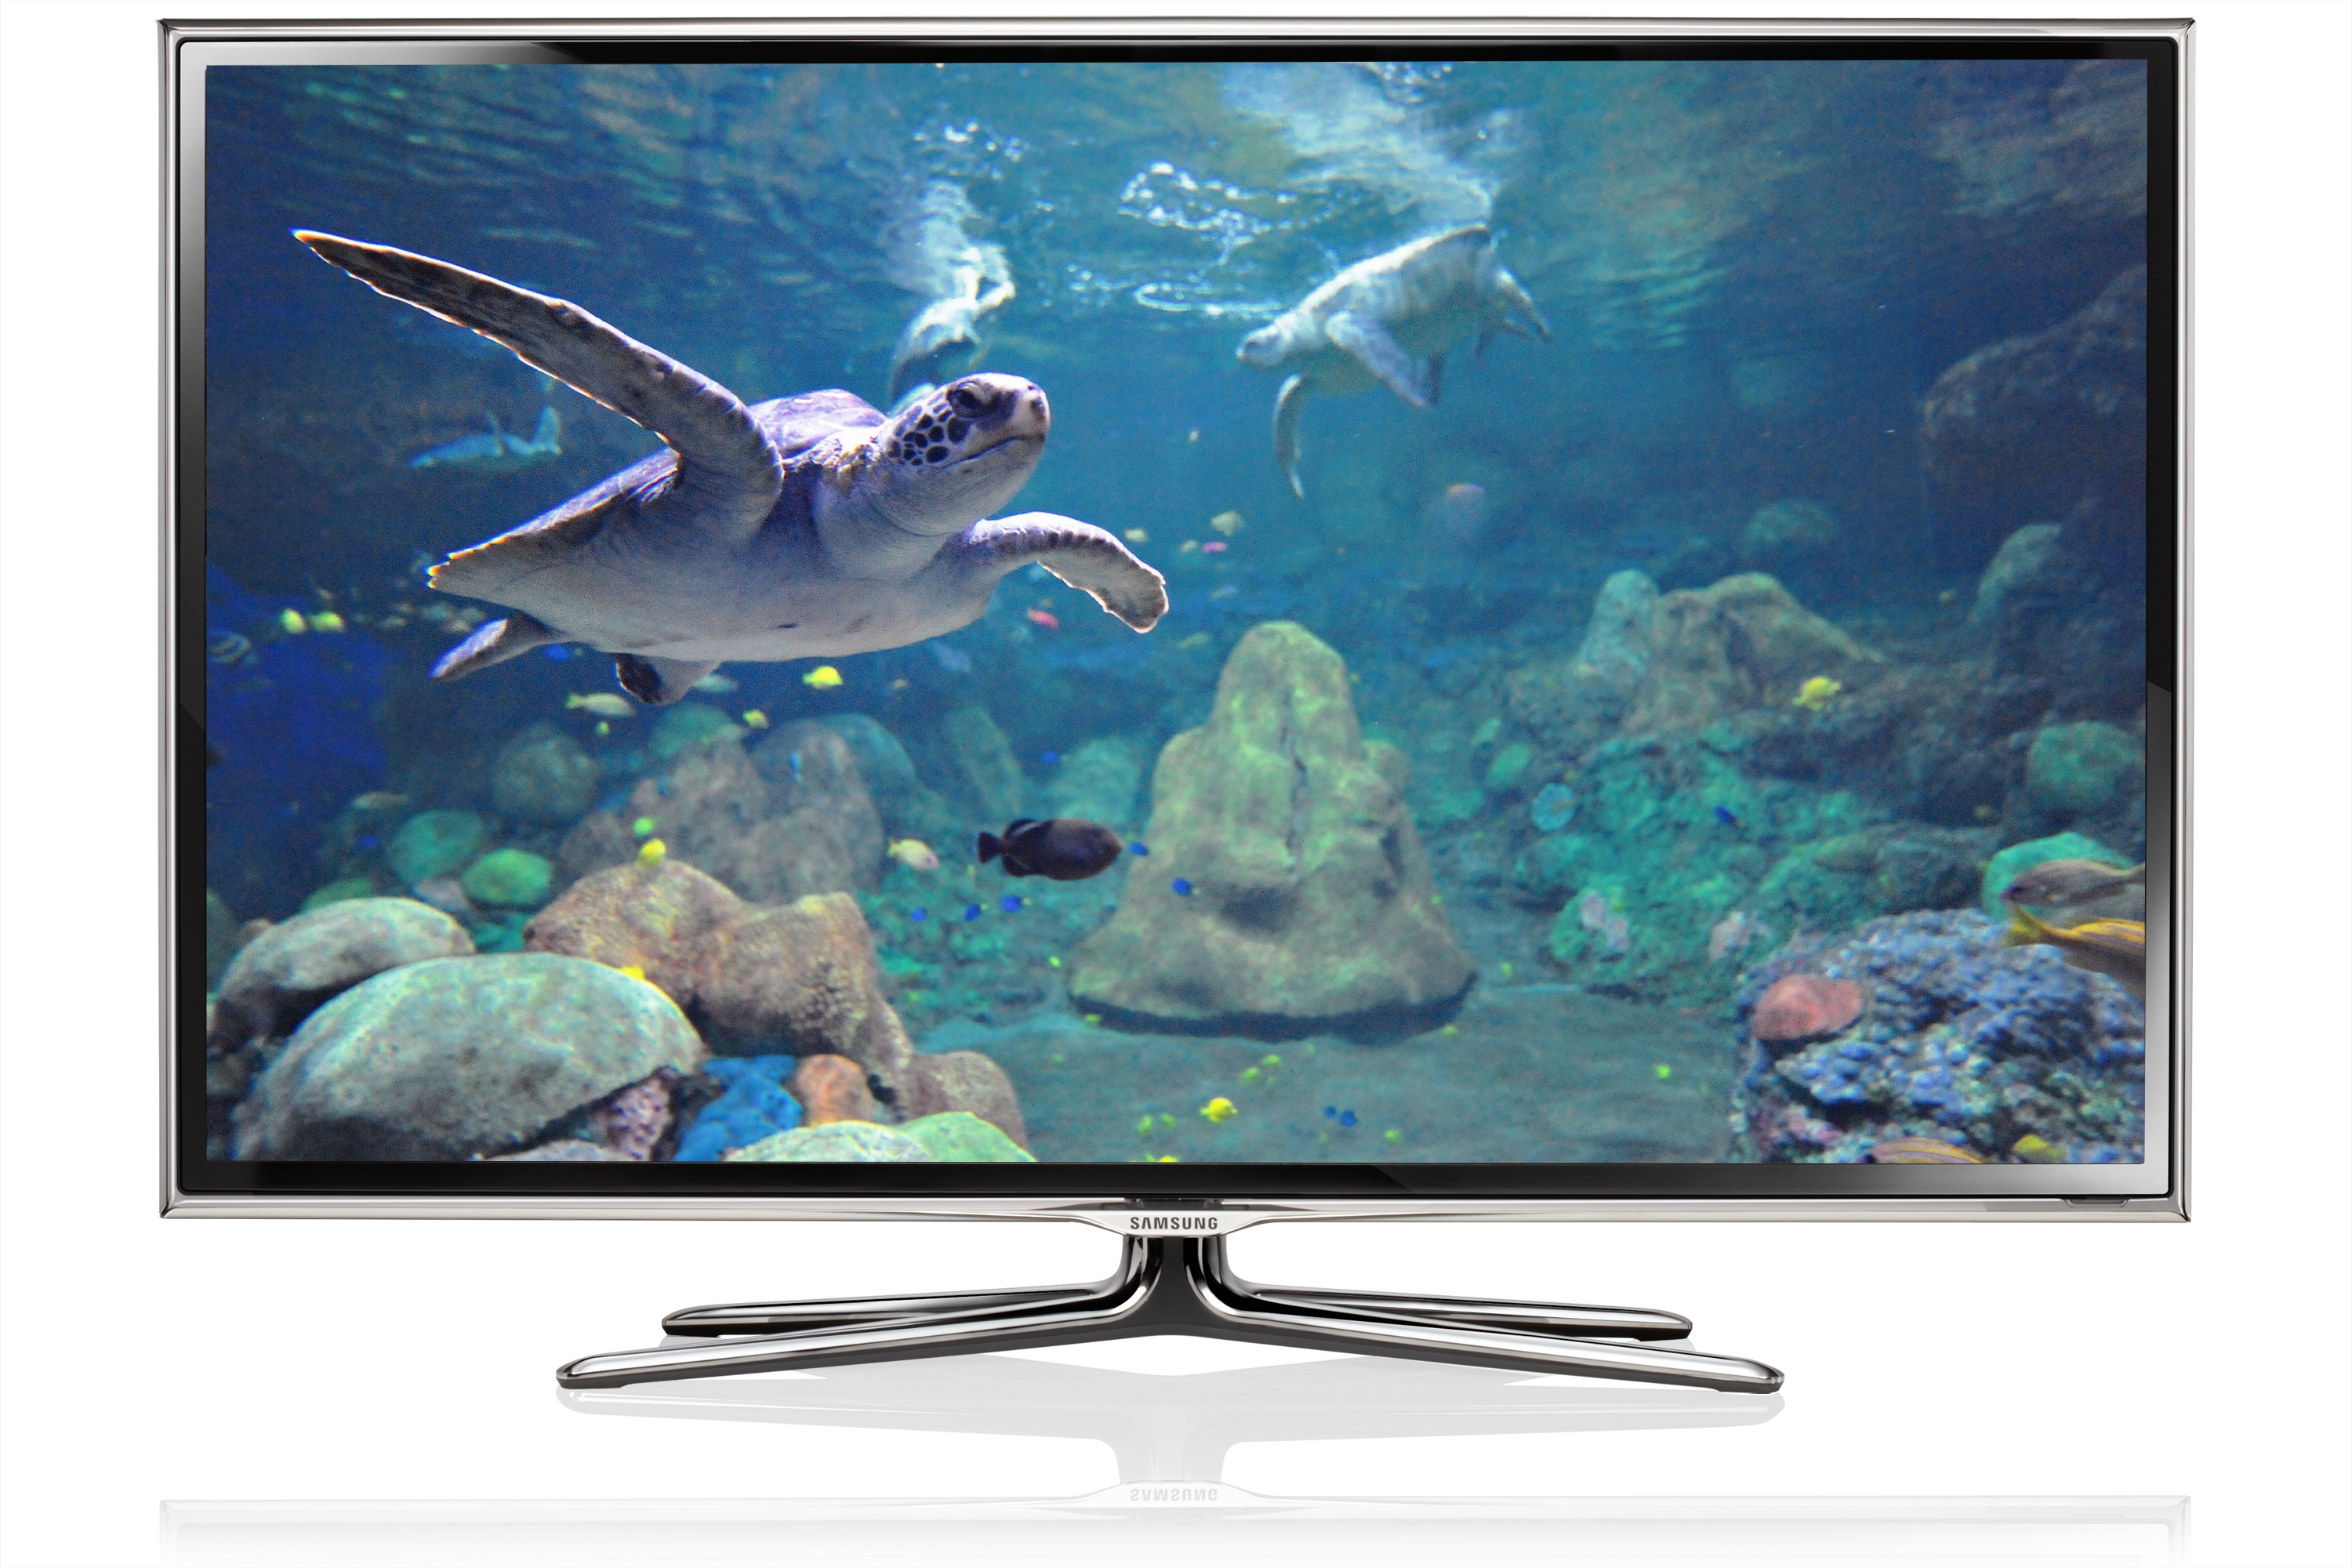 30bd21c74f5 2012  UA40ES6600R Smart 40-Inch Full HD LED TV